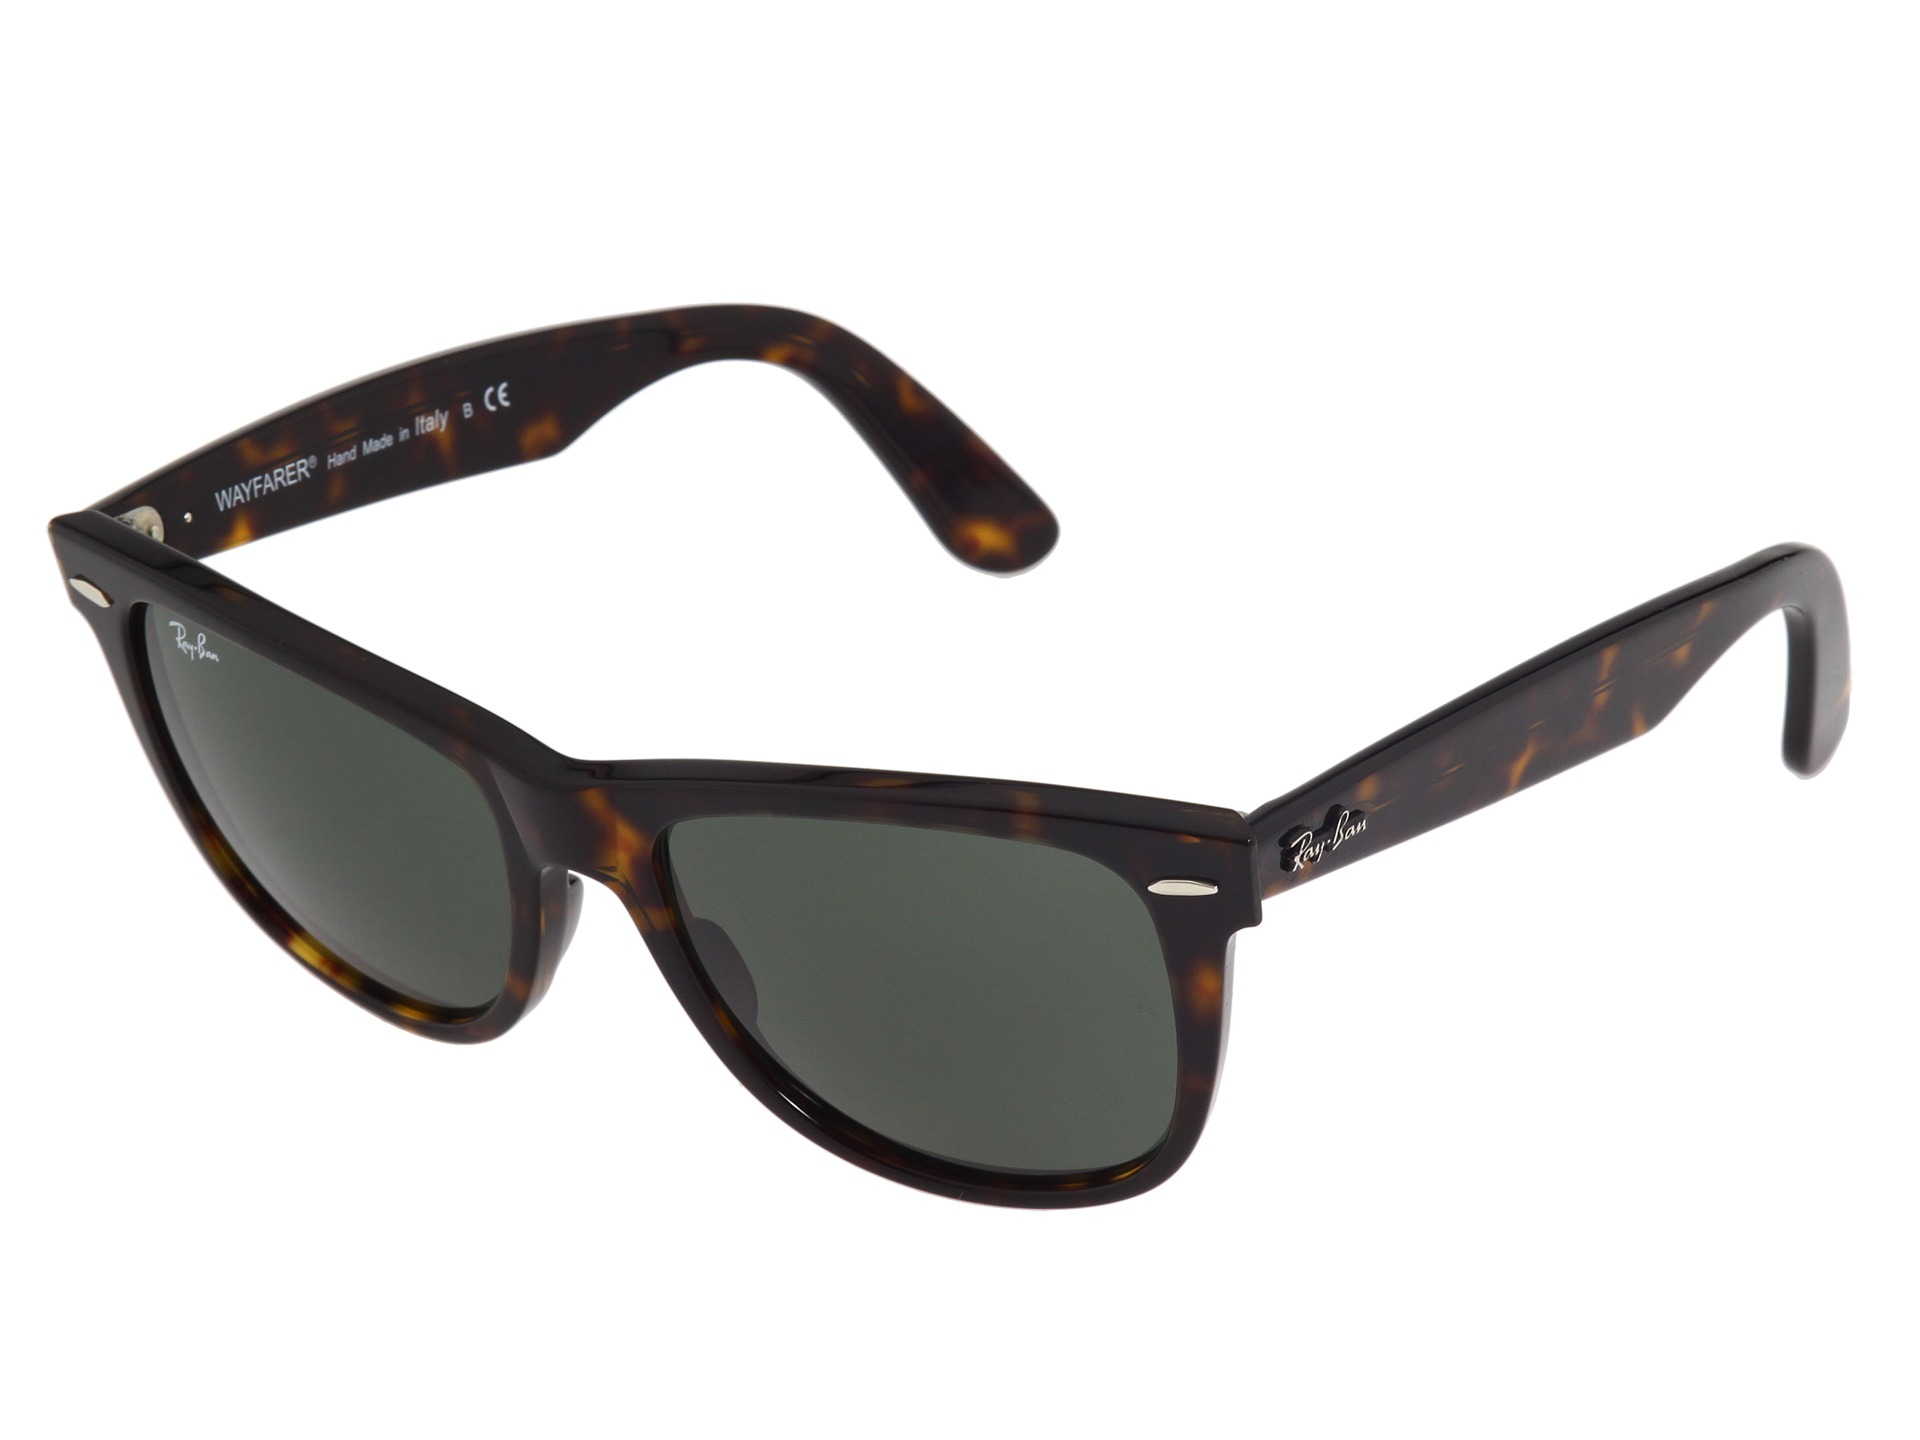 Ray Ban Rb2140 Original Wayfarer  ray ban rb2140 original wayfarer 54mm zappos com free shipping